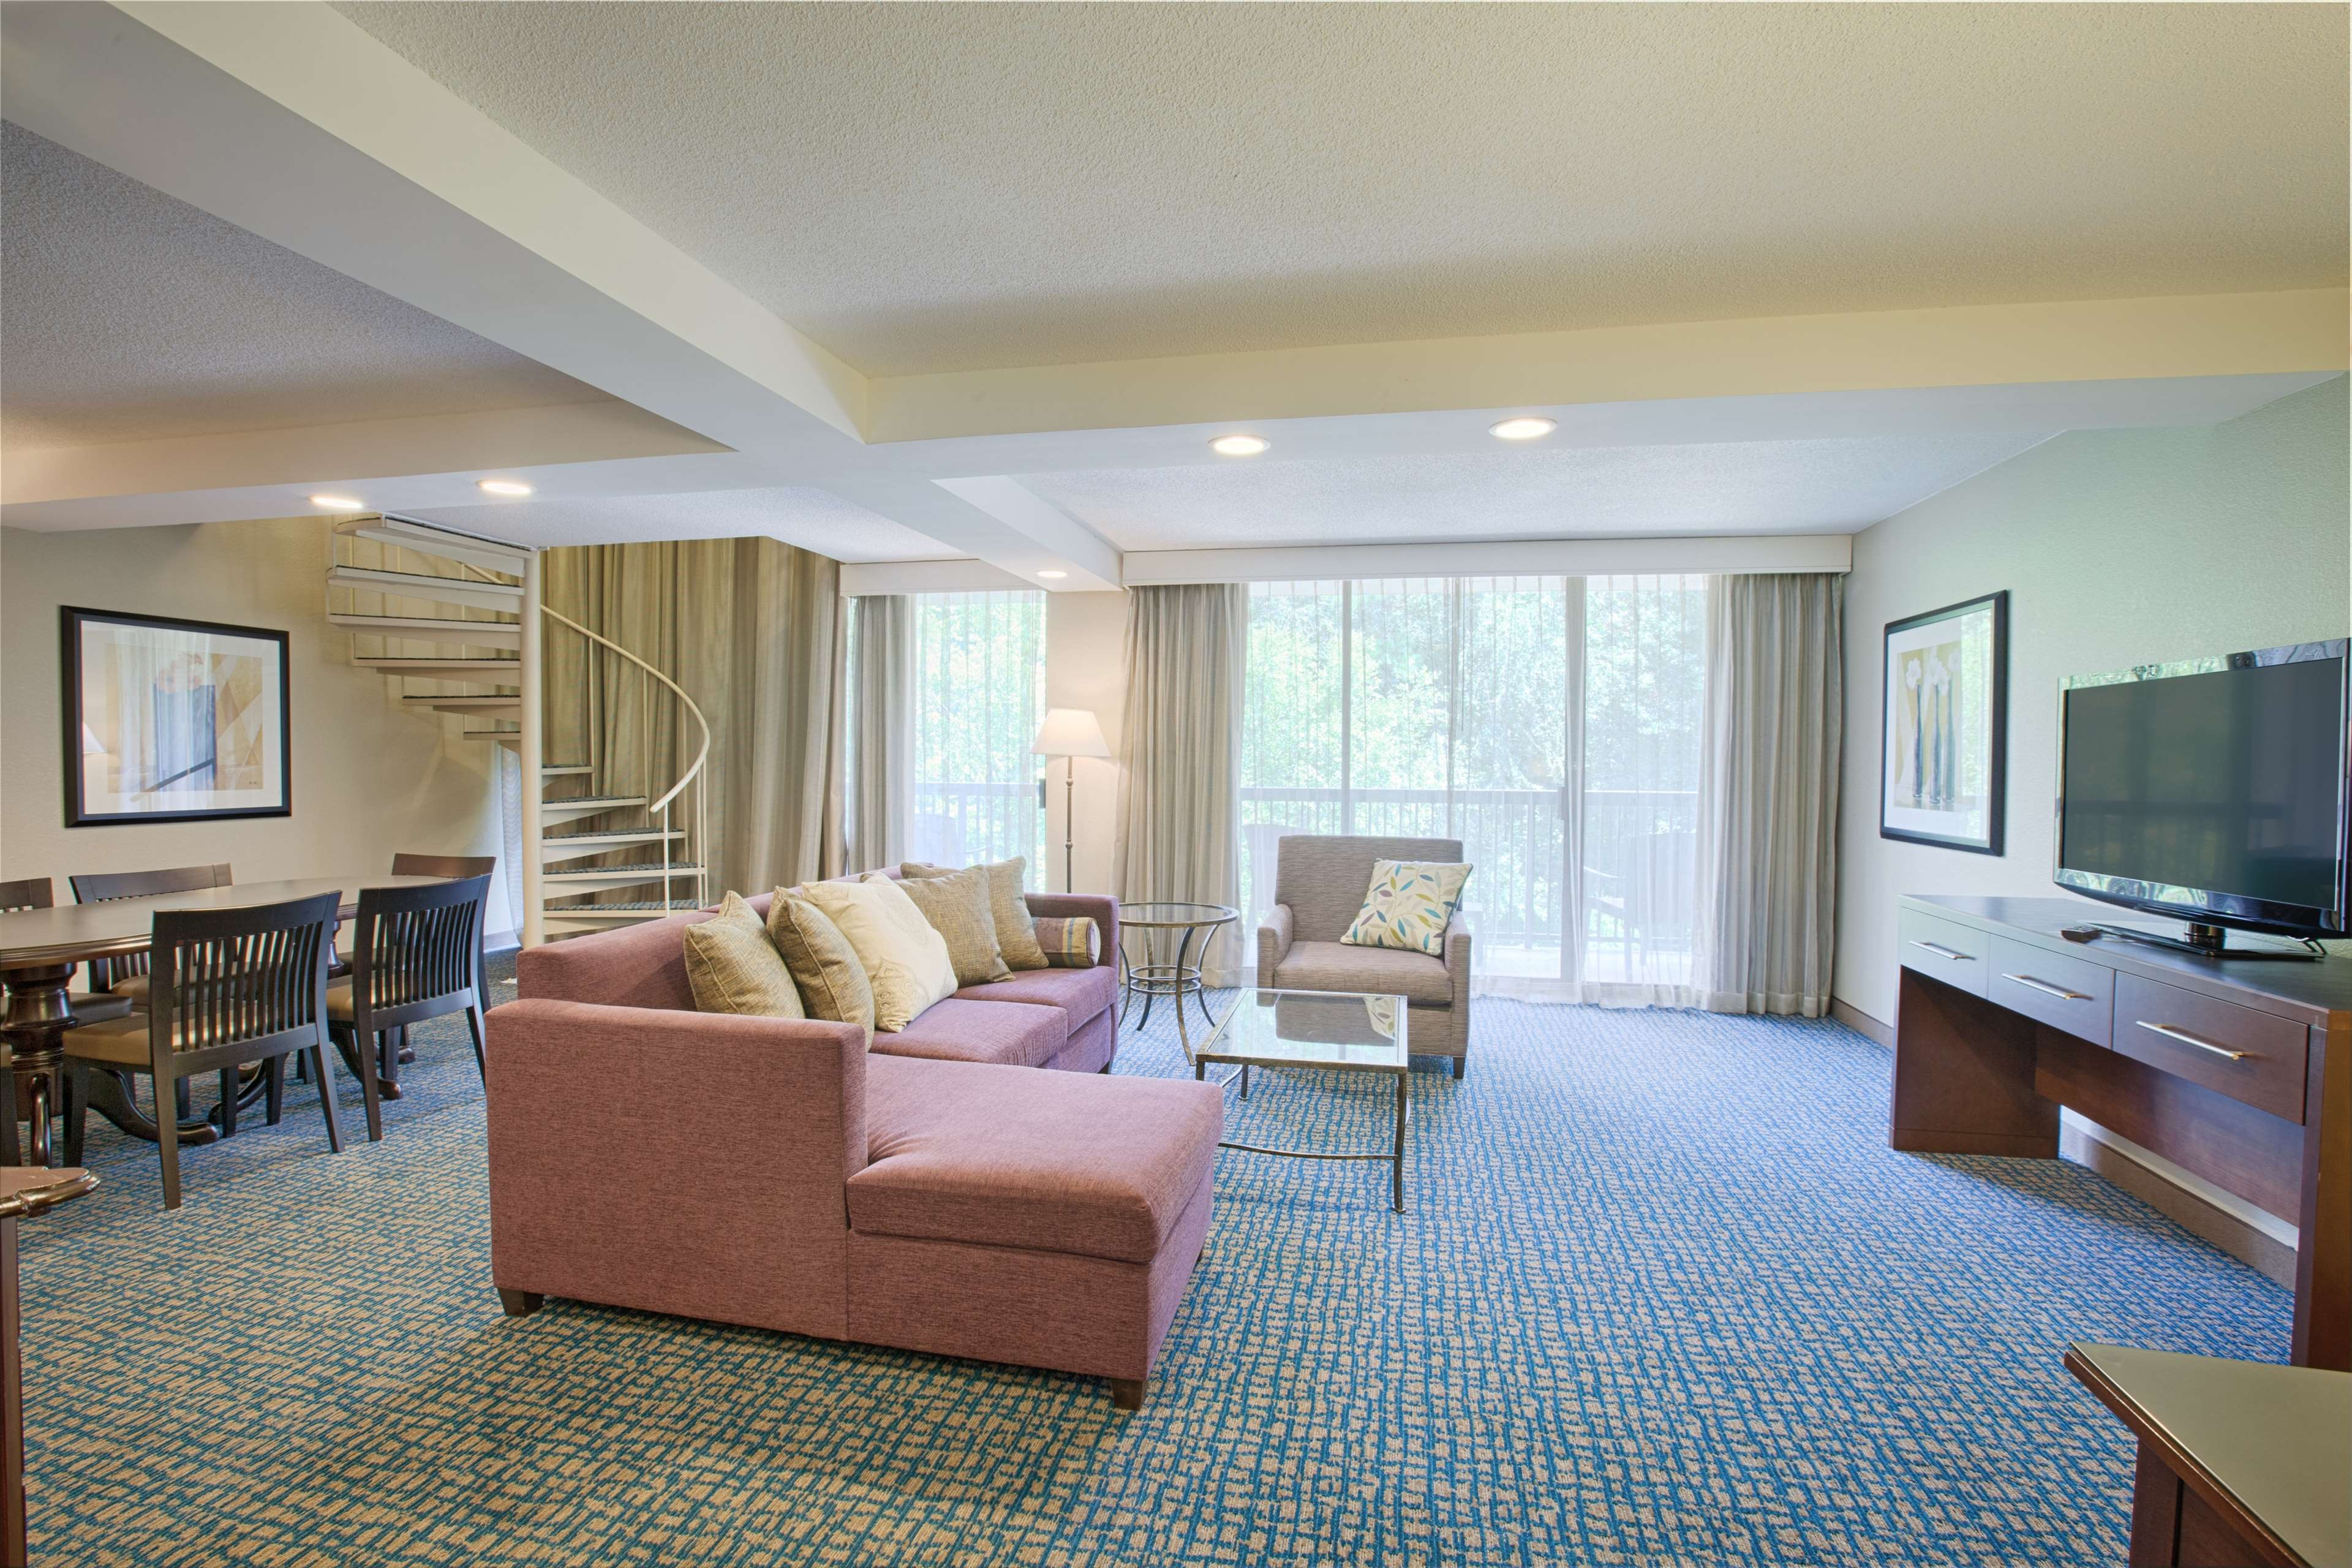 Peachtree City Hotel & Conference Center image 14